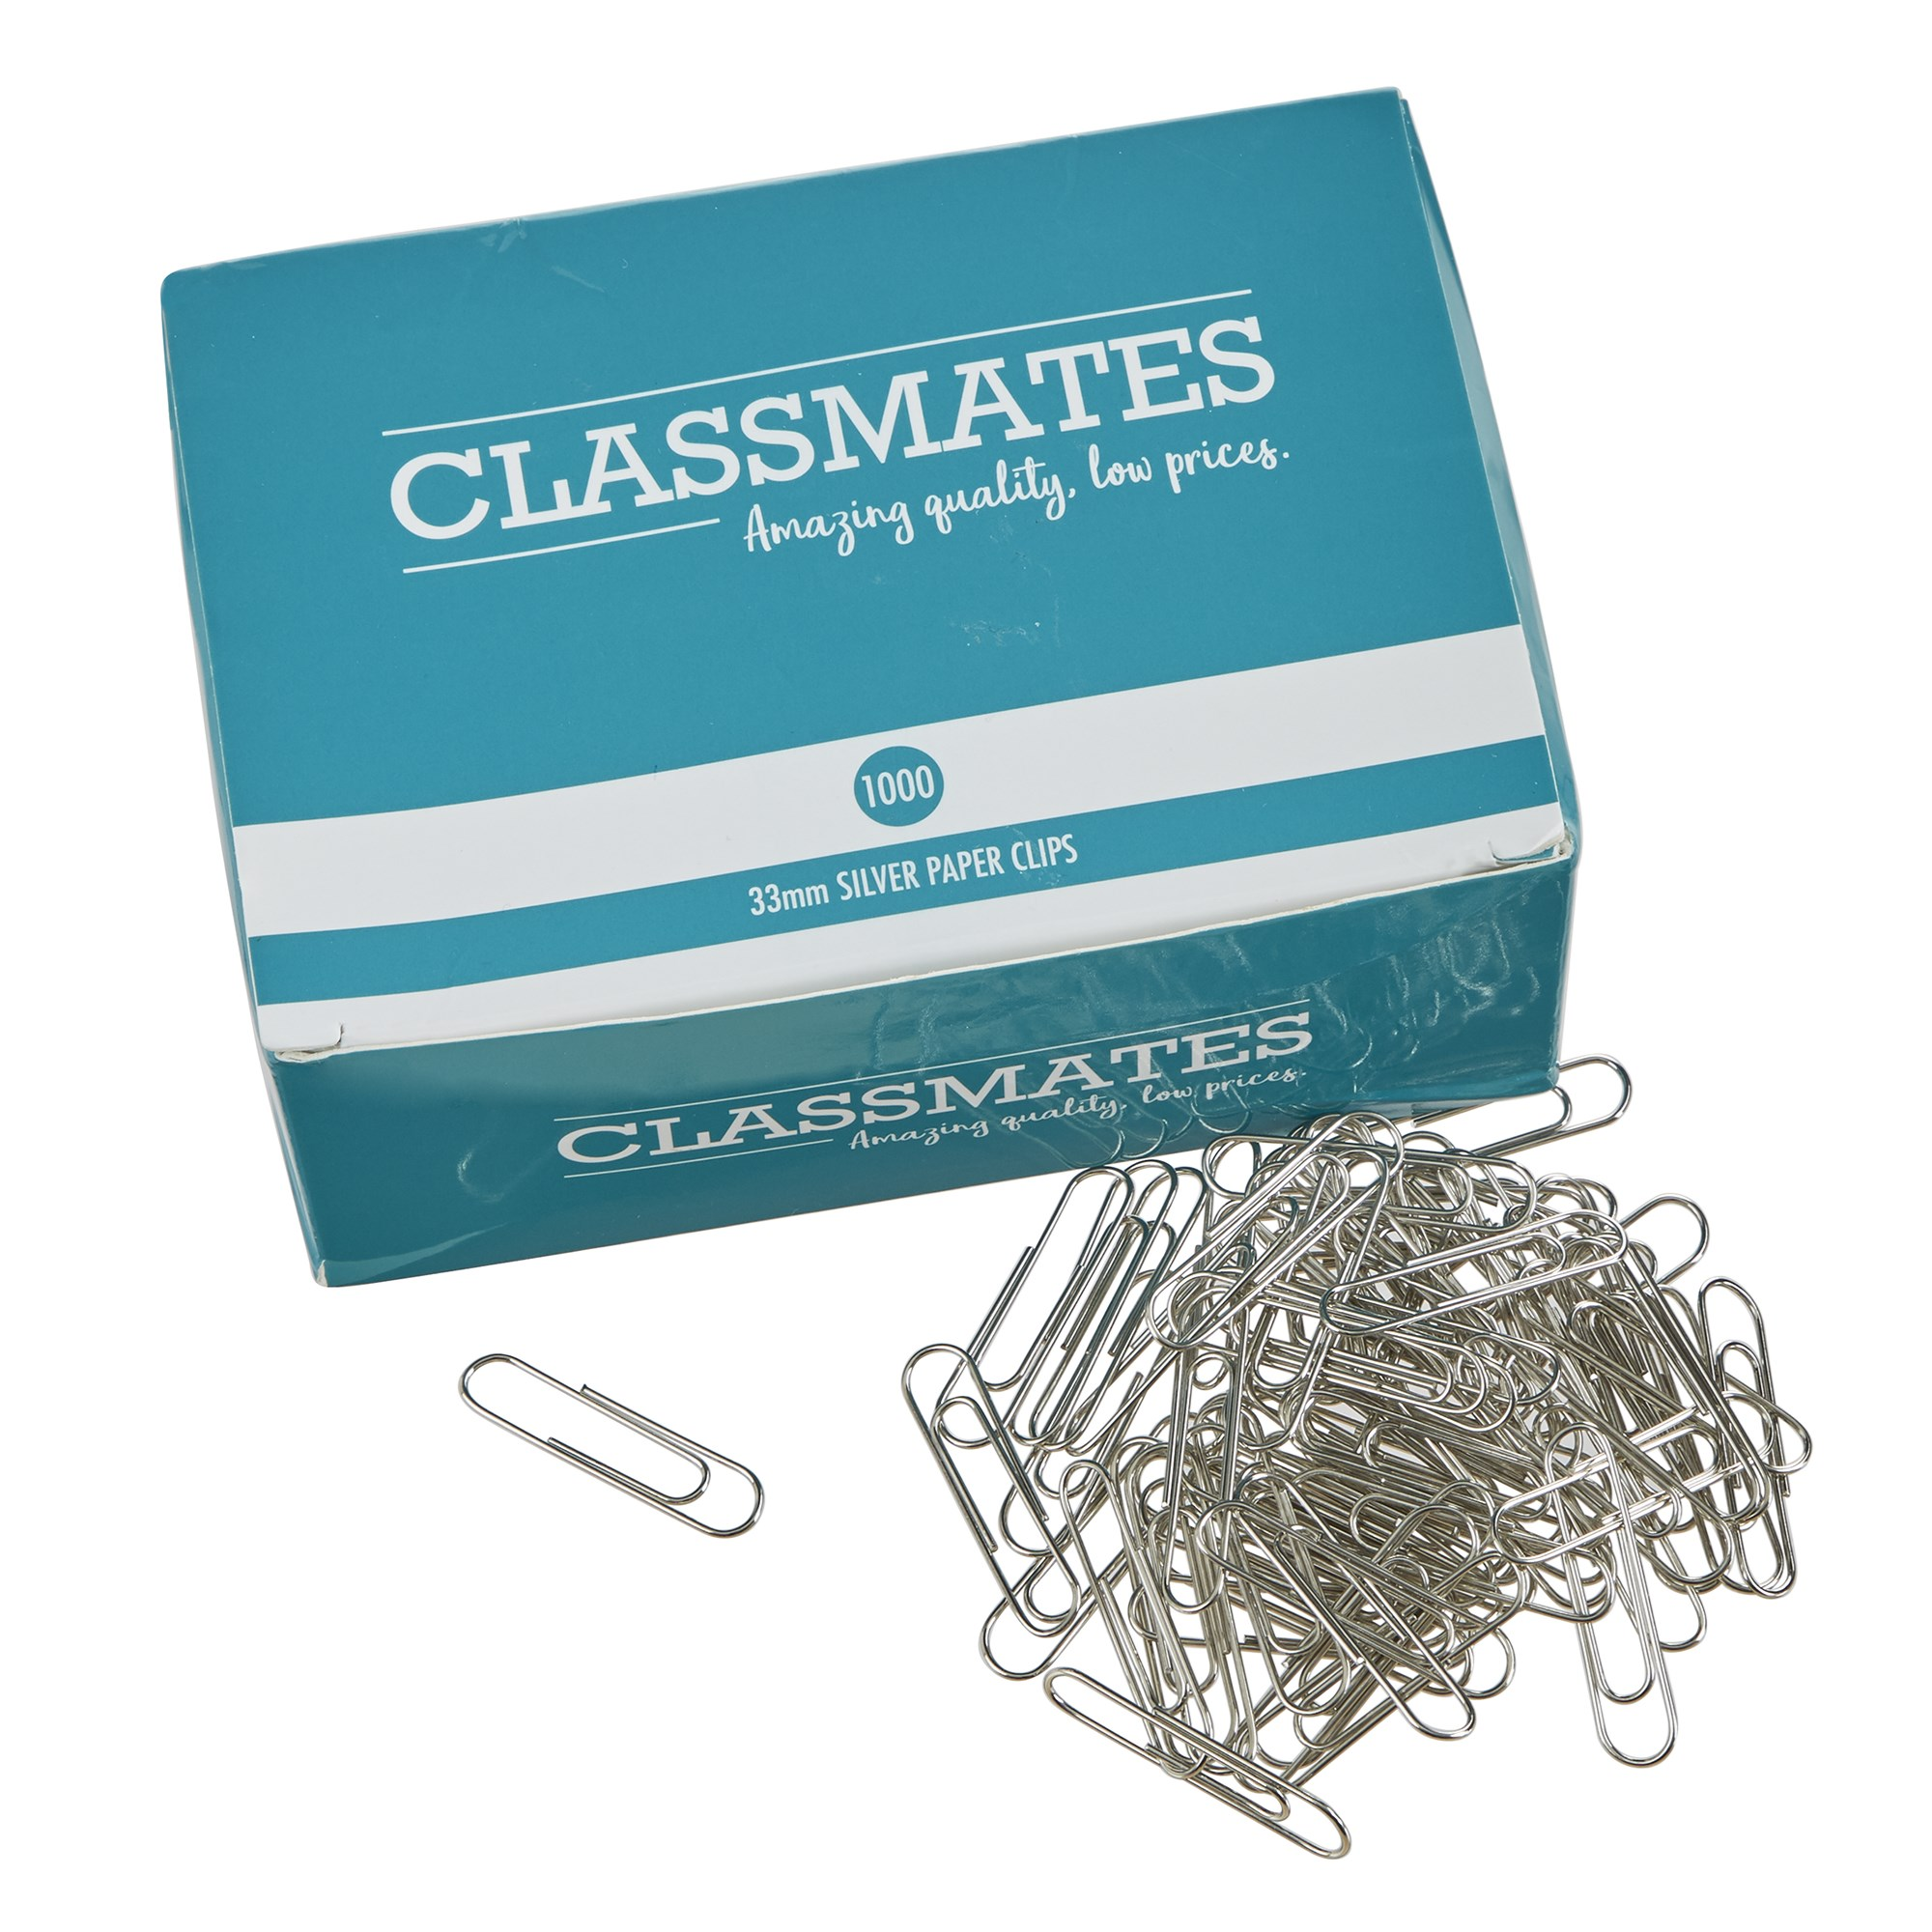 Classmates Paper Clips Large 31mm - Pack of 1000